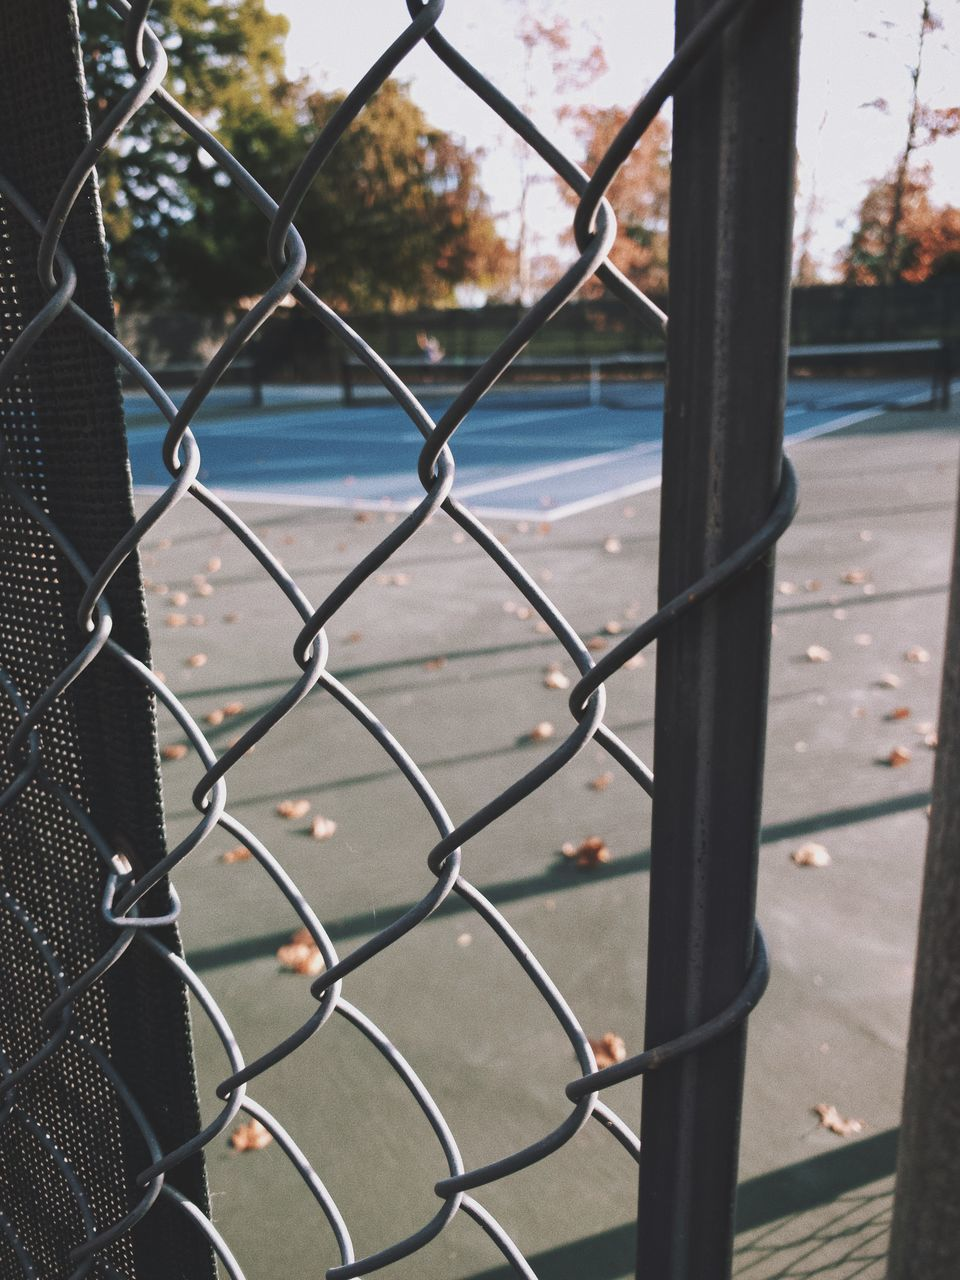 CLOSE-UP OF CHAINLINK FENCE BY CITY